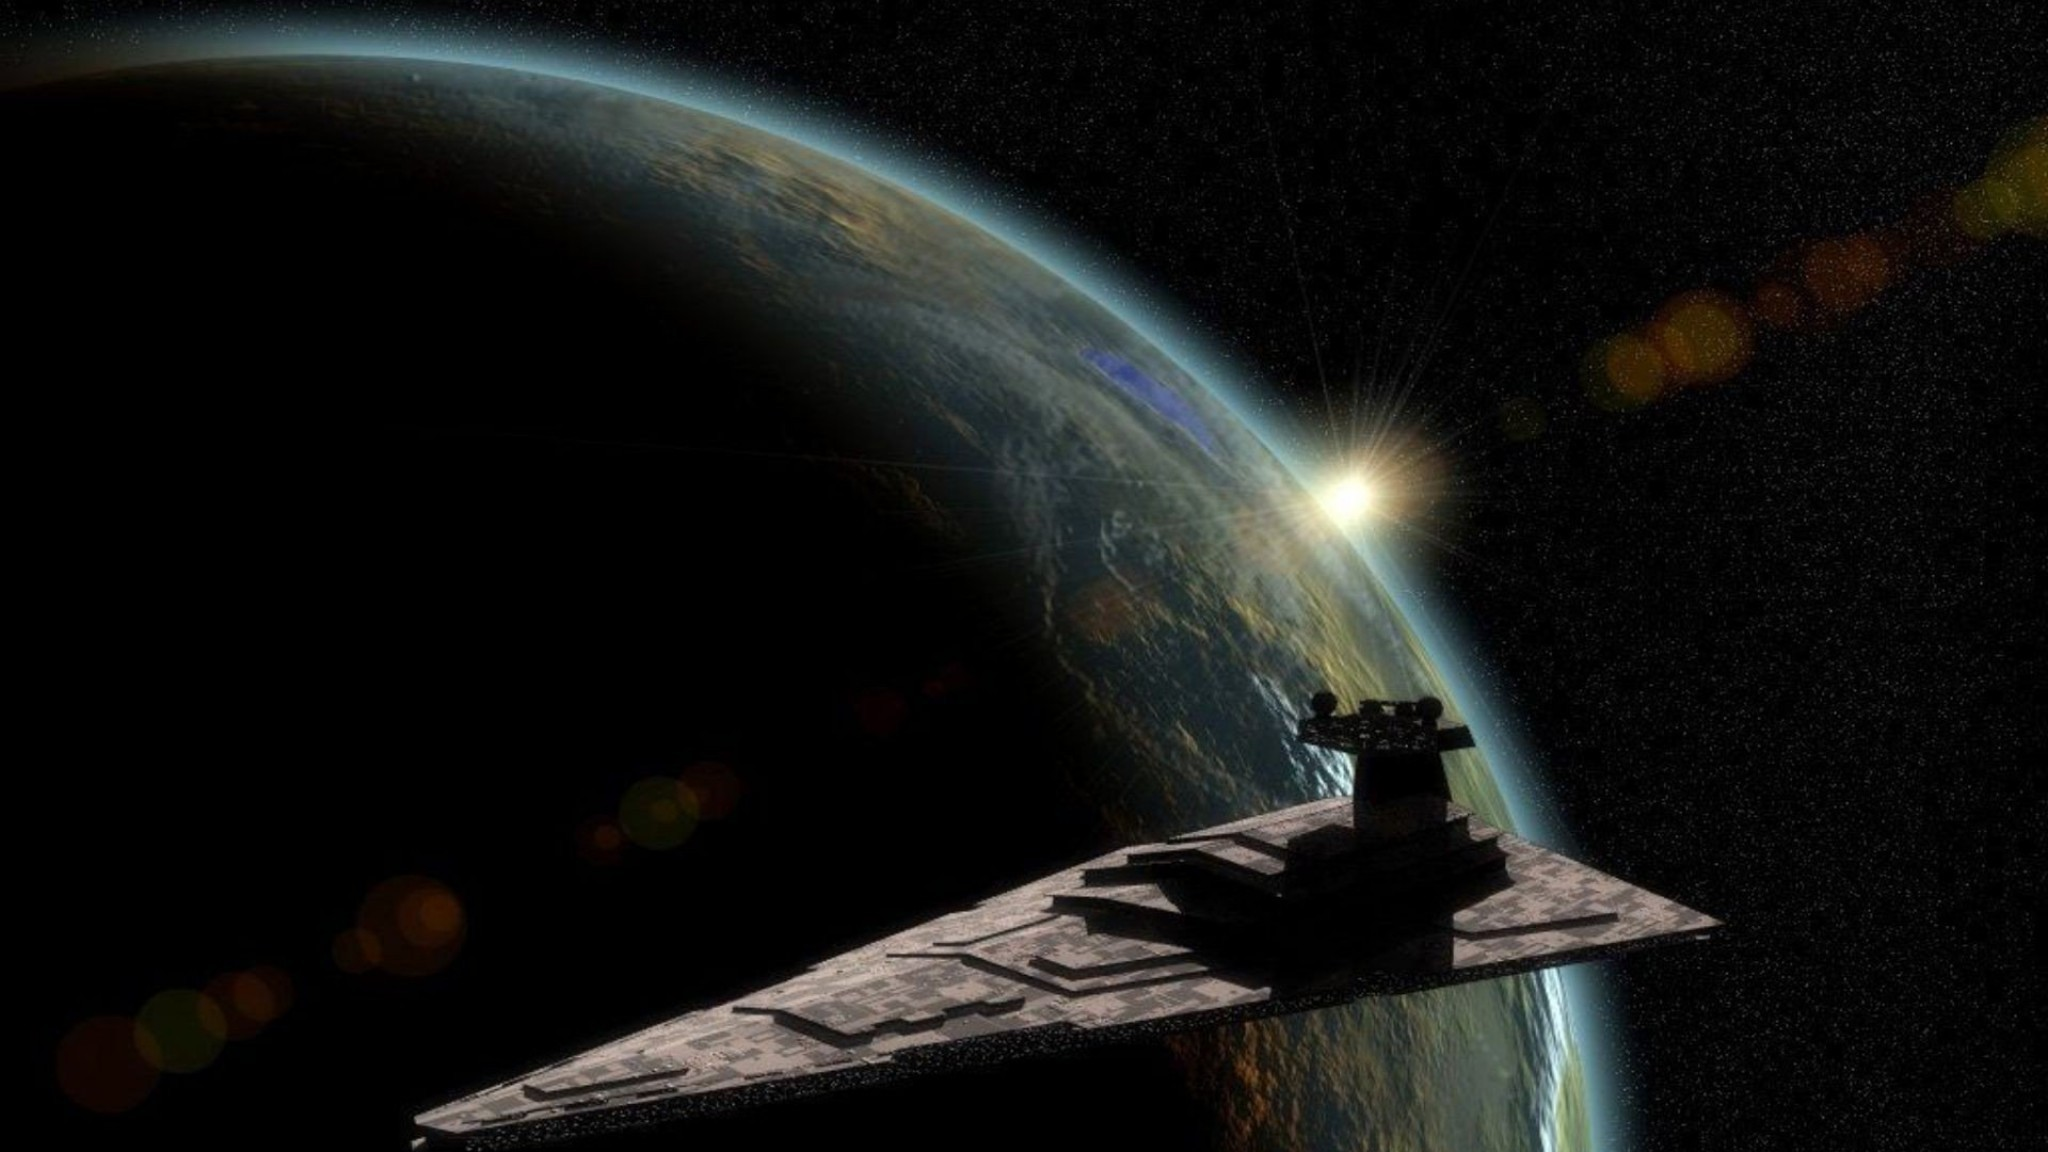 Star Wars outer space stars planets artwork Star Destroyer